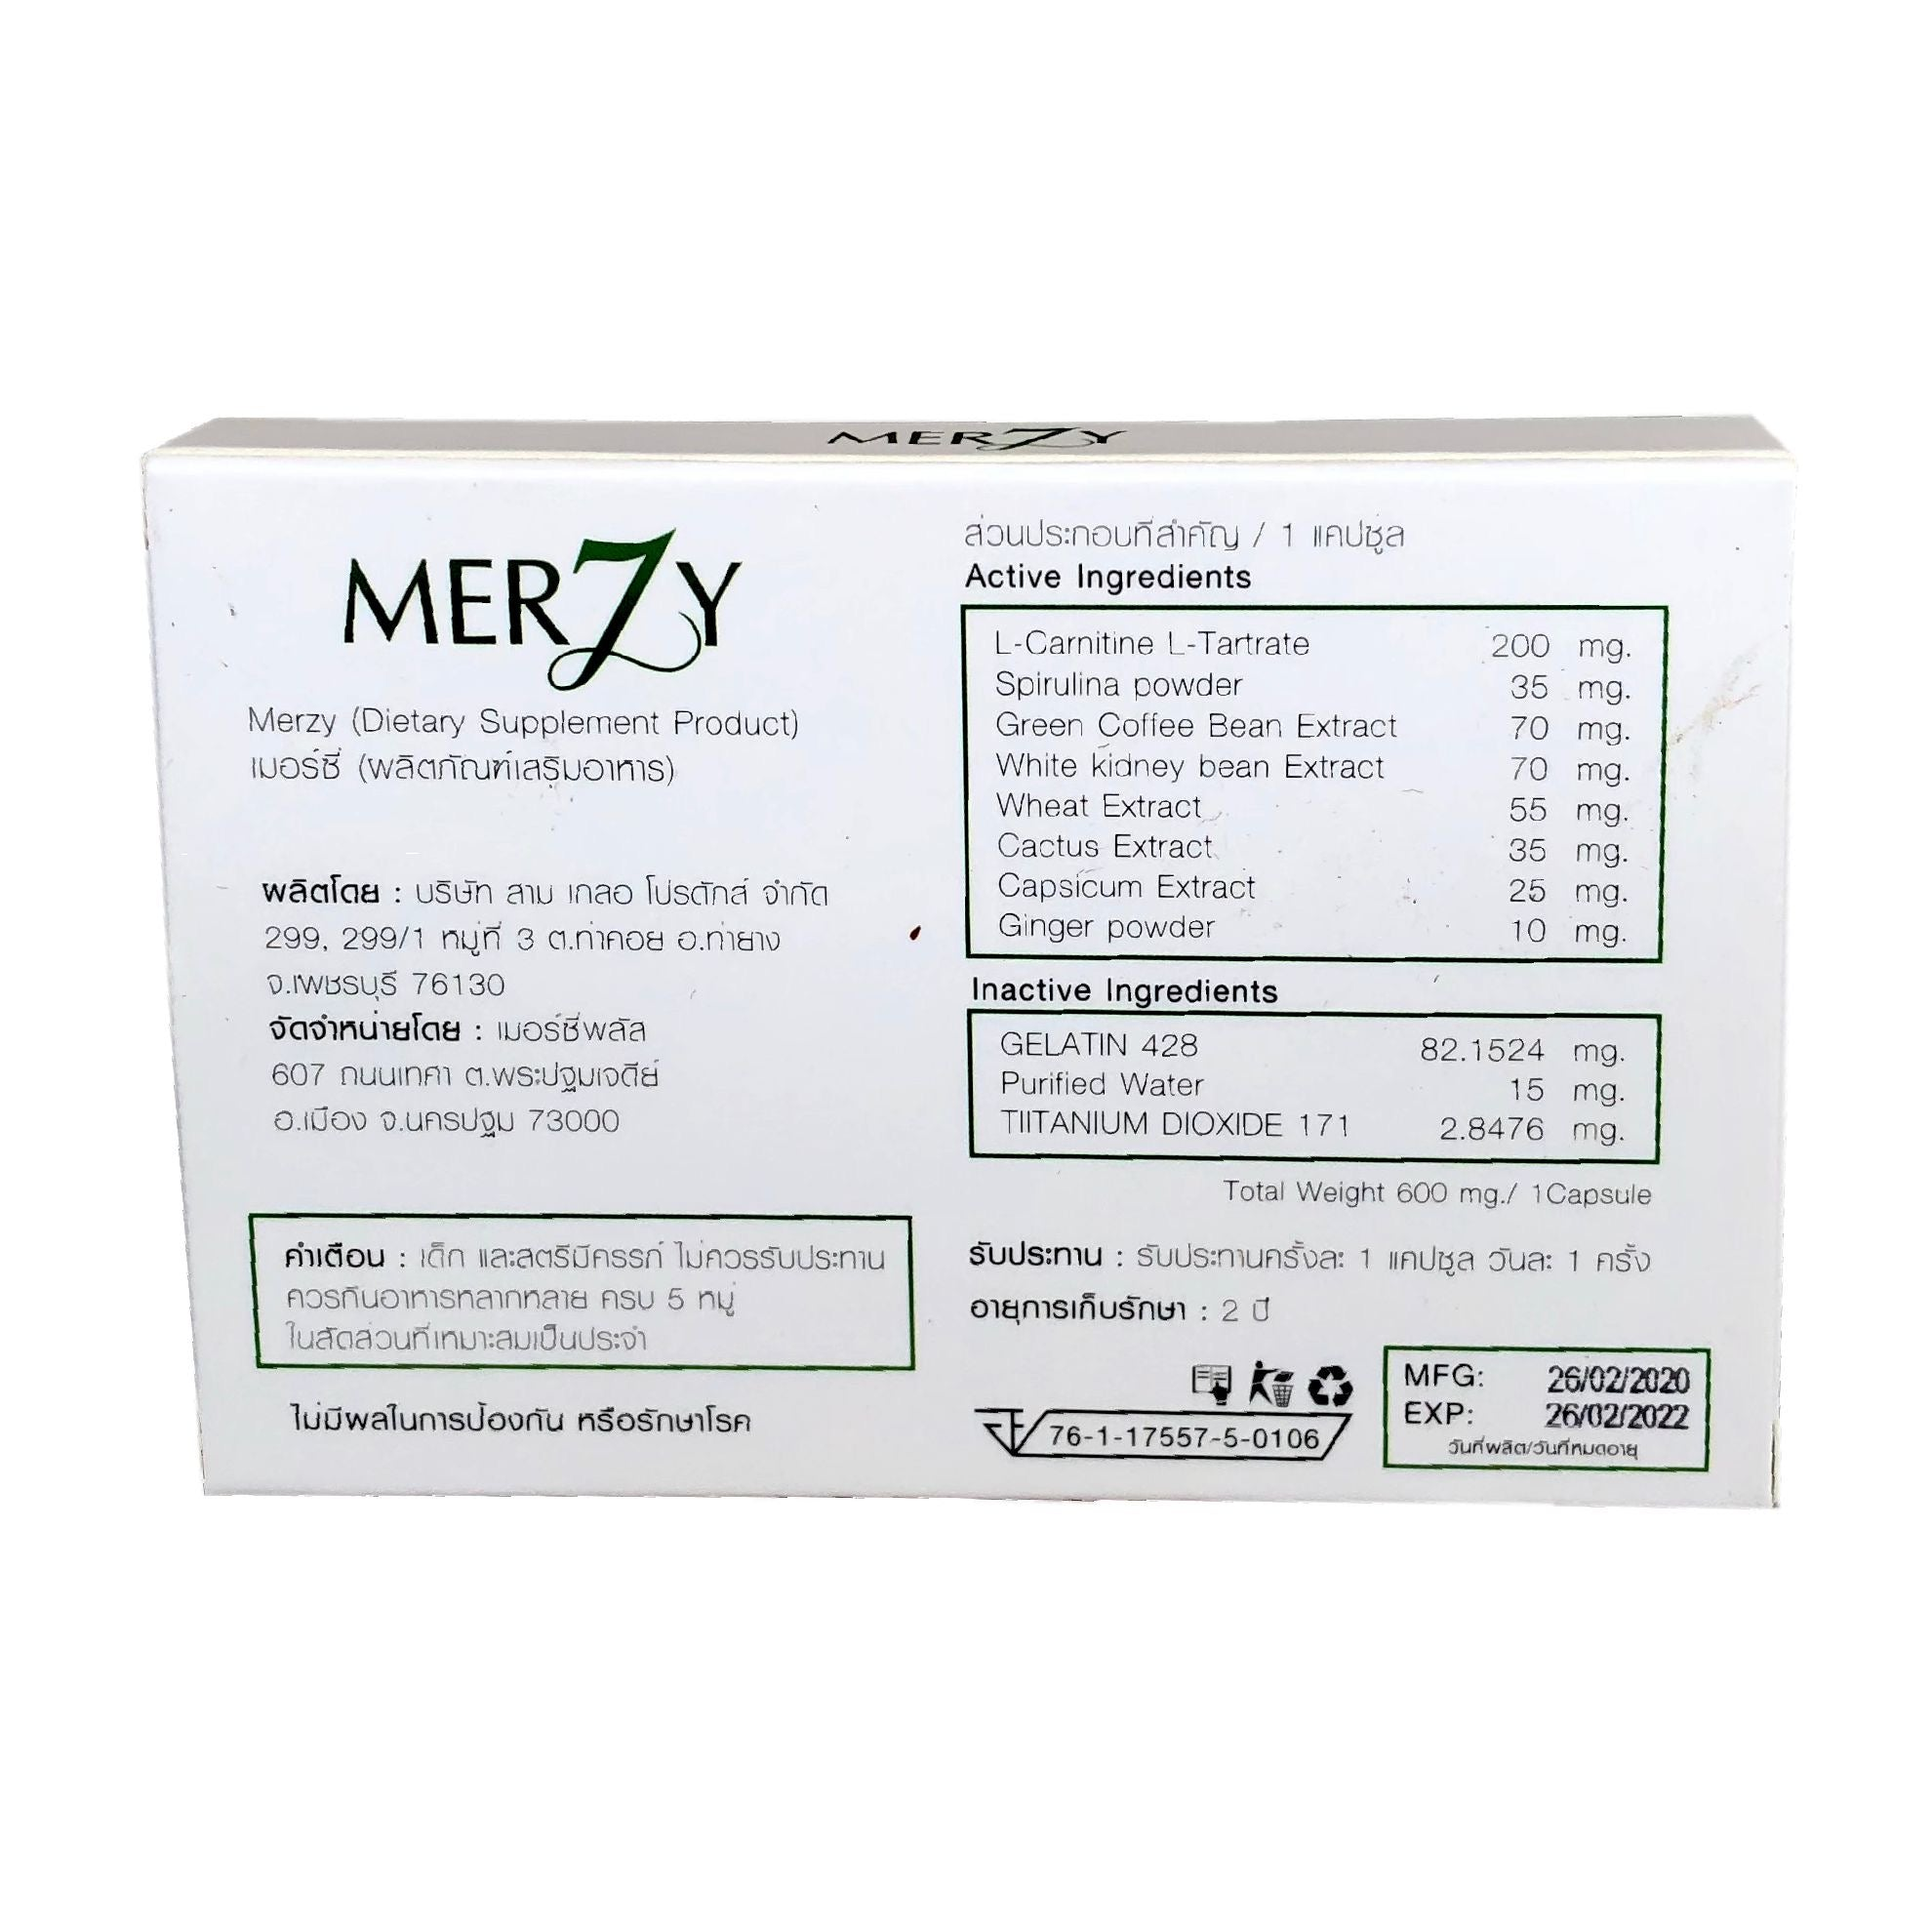 Body Detox Merzy Supplement ACSP Shop